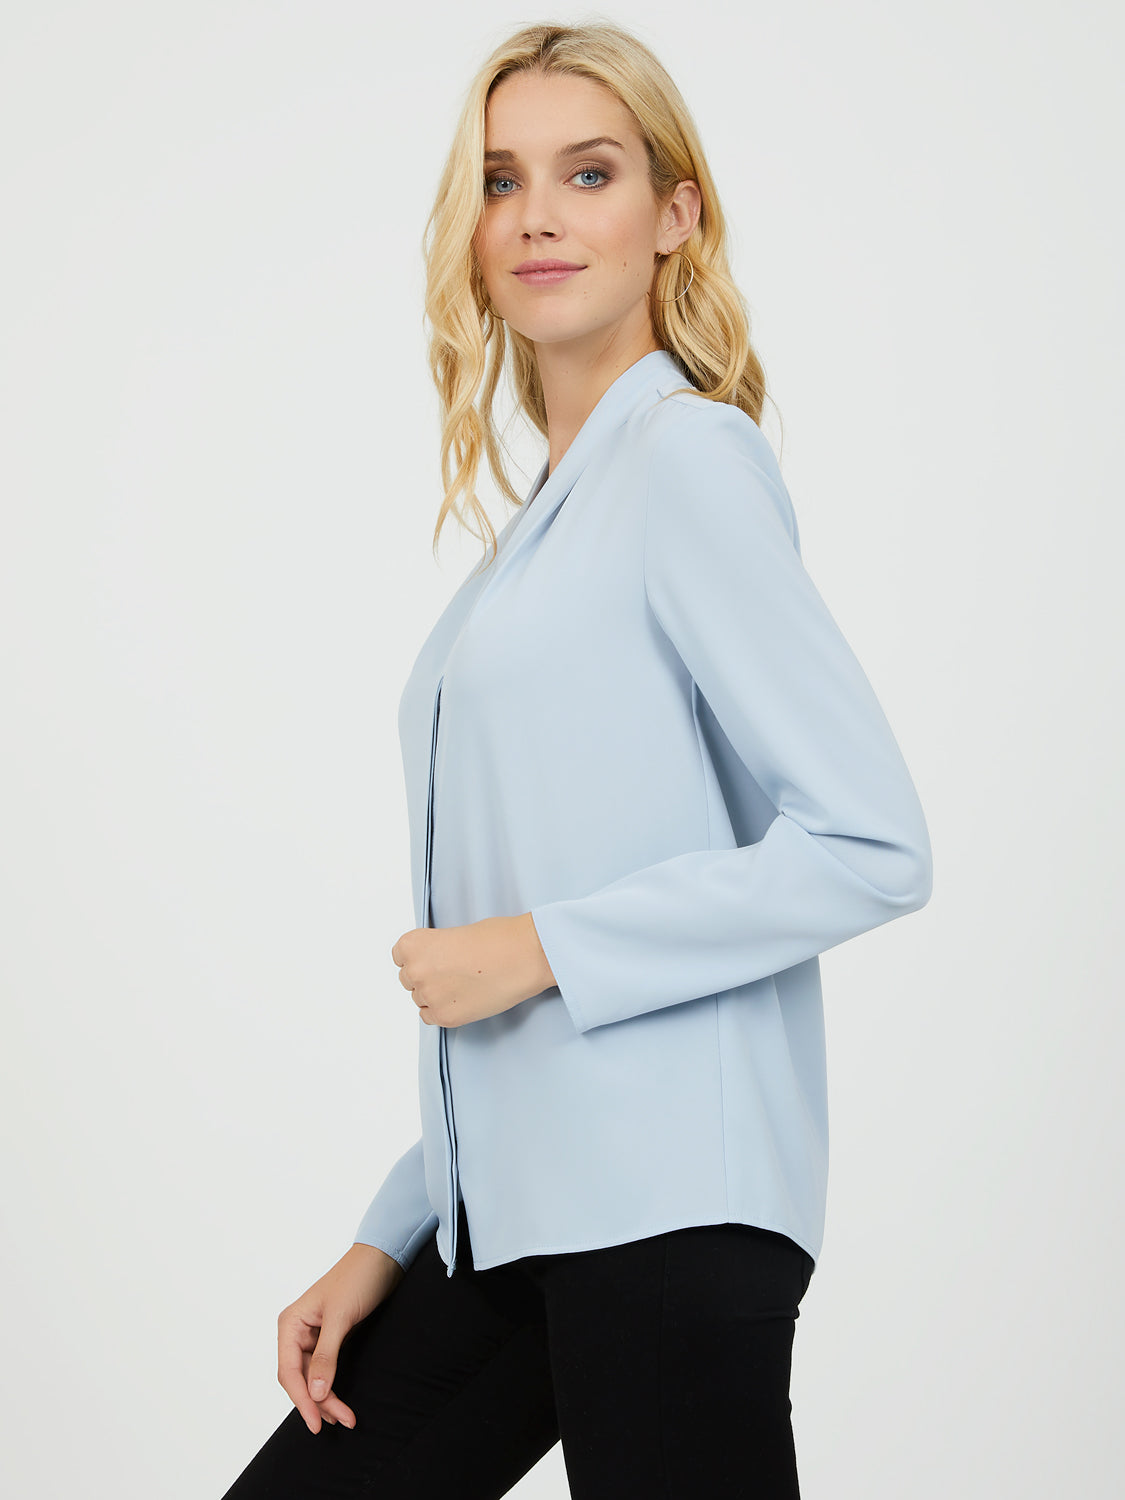 Shawl Collar V-Neck Blouse